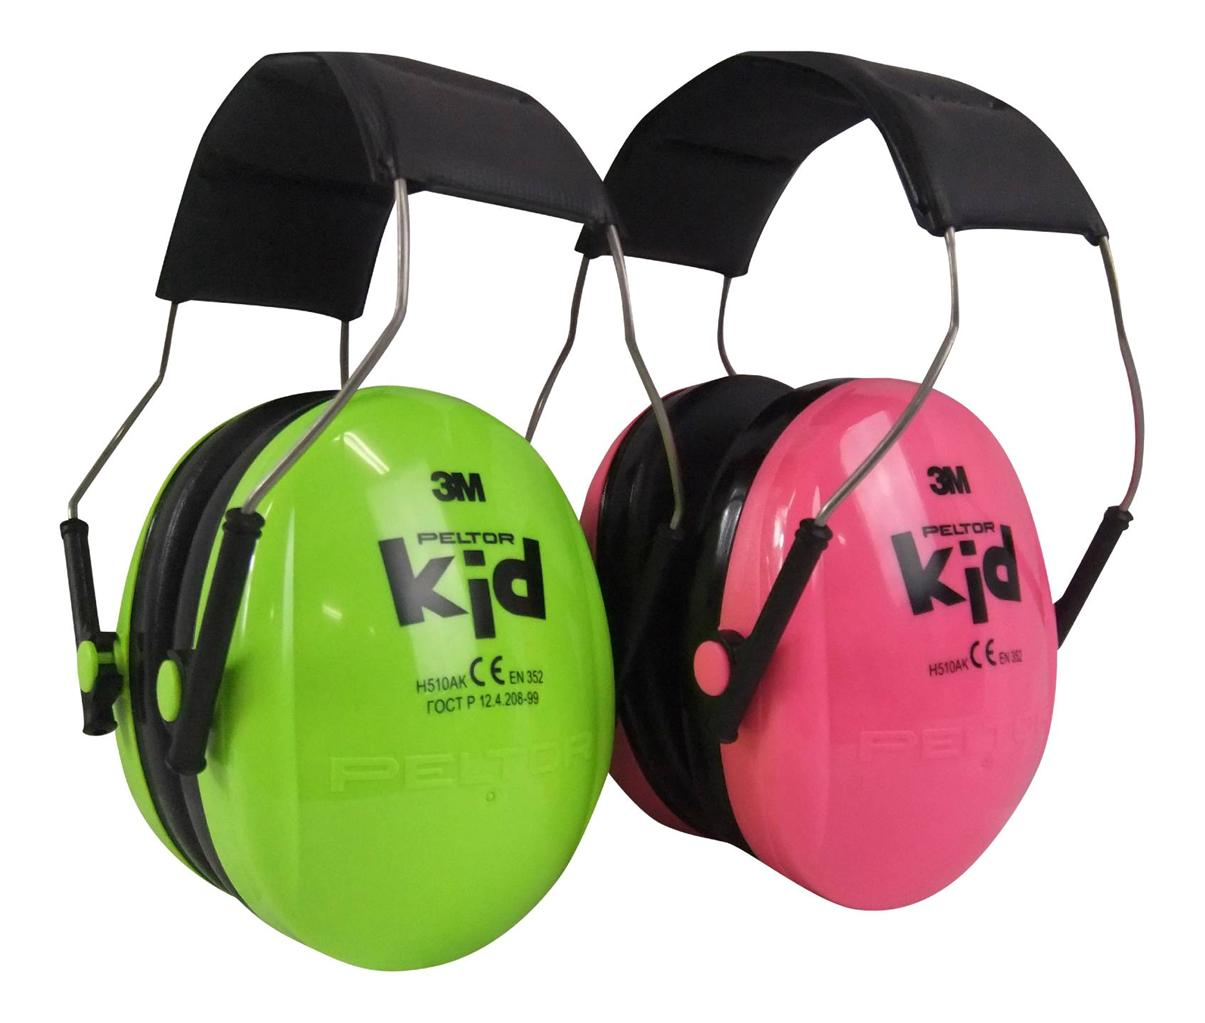 3M Peltor Kid Earmuff (Up to 7 yrs) H510AK (Light Green)